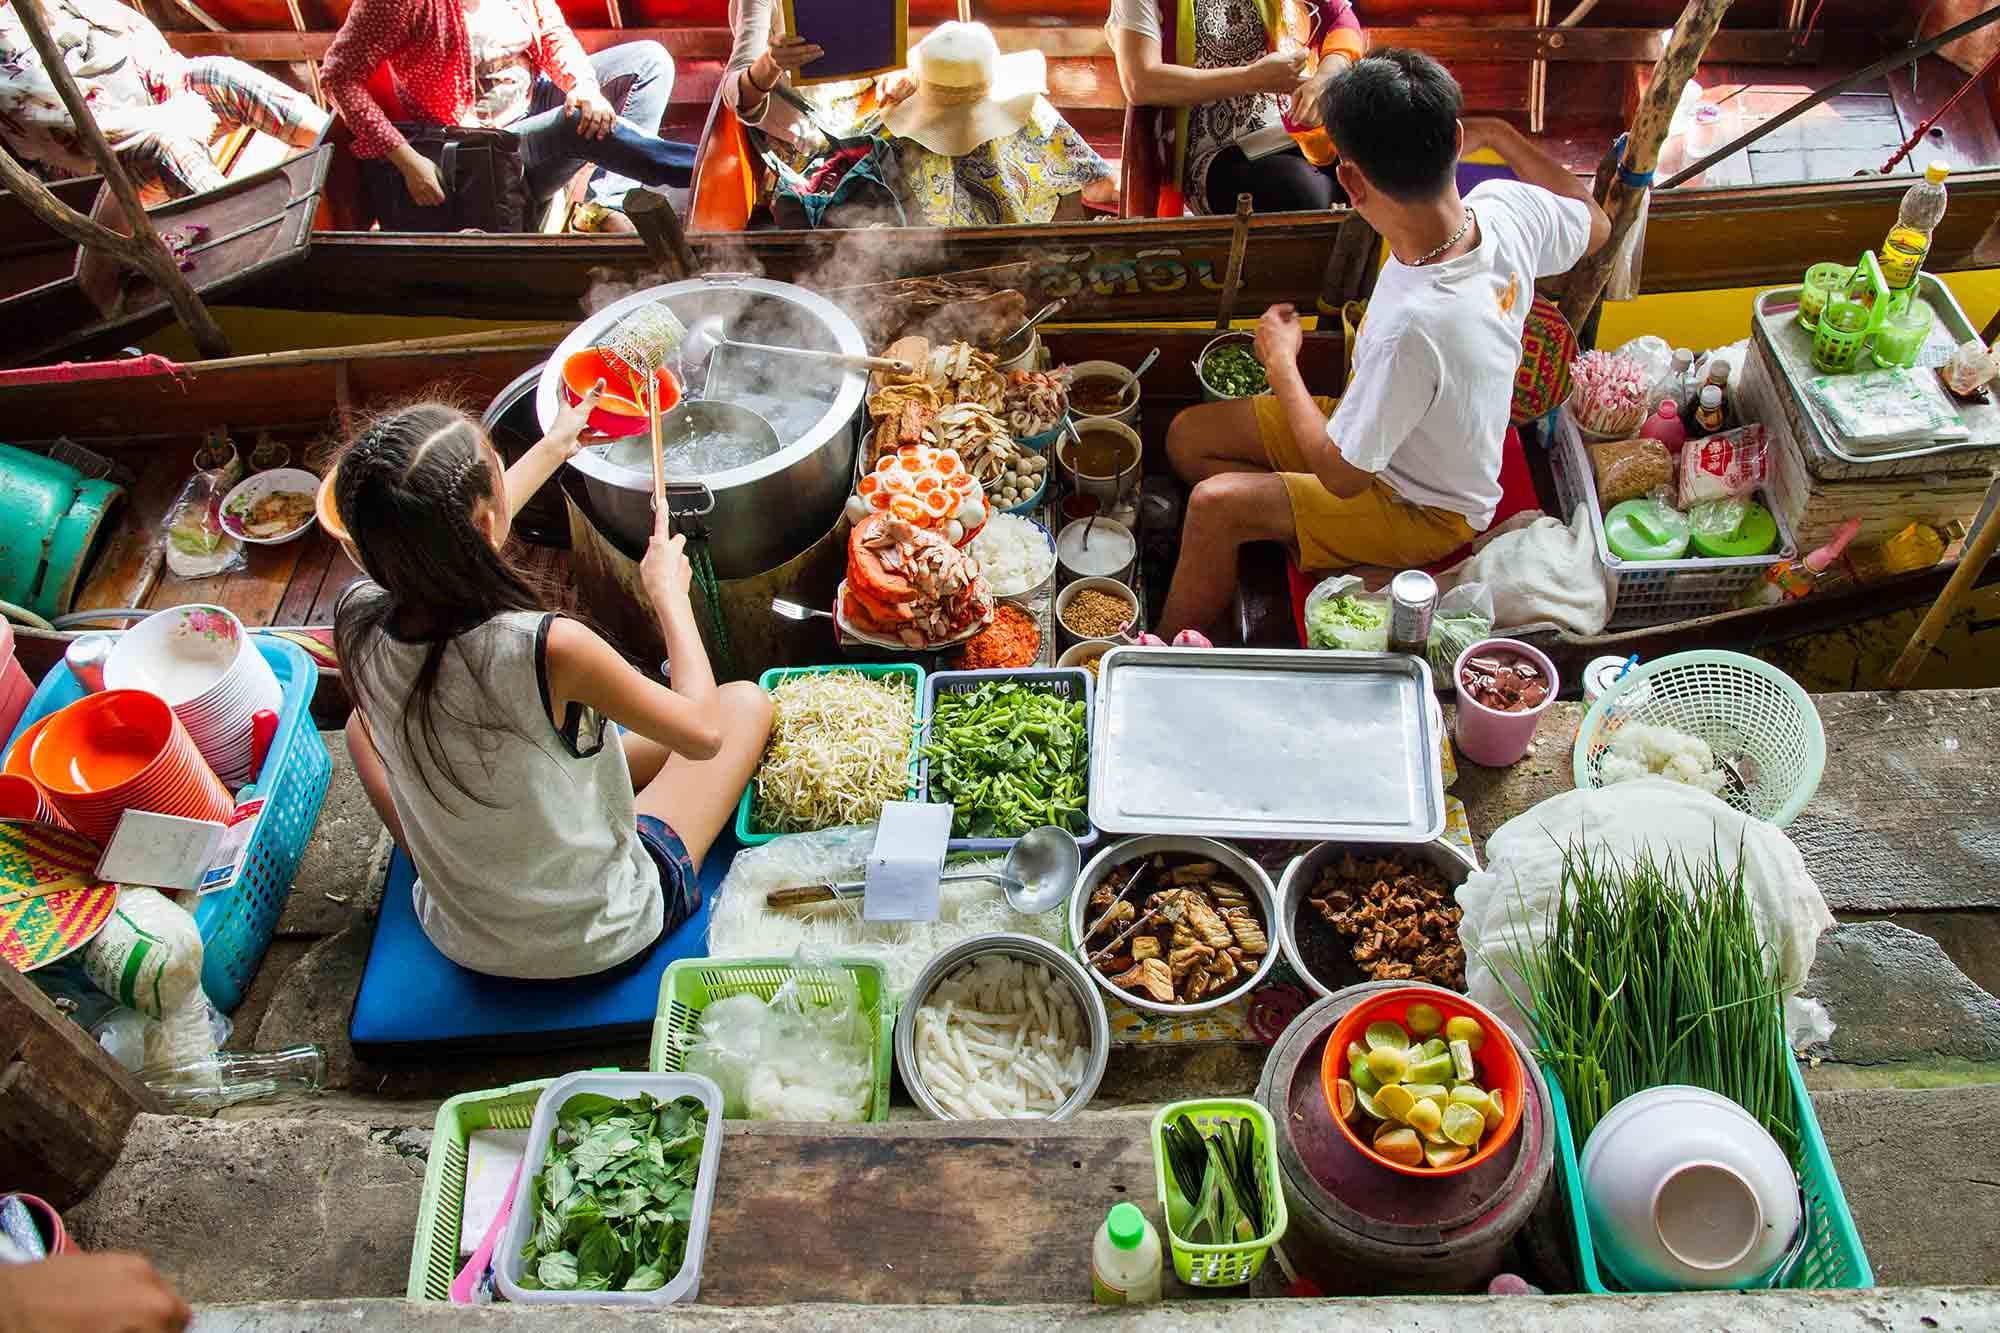 people making noodle soup which demonstrates their food culture